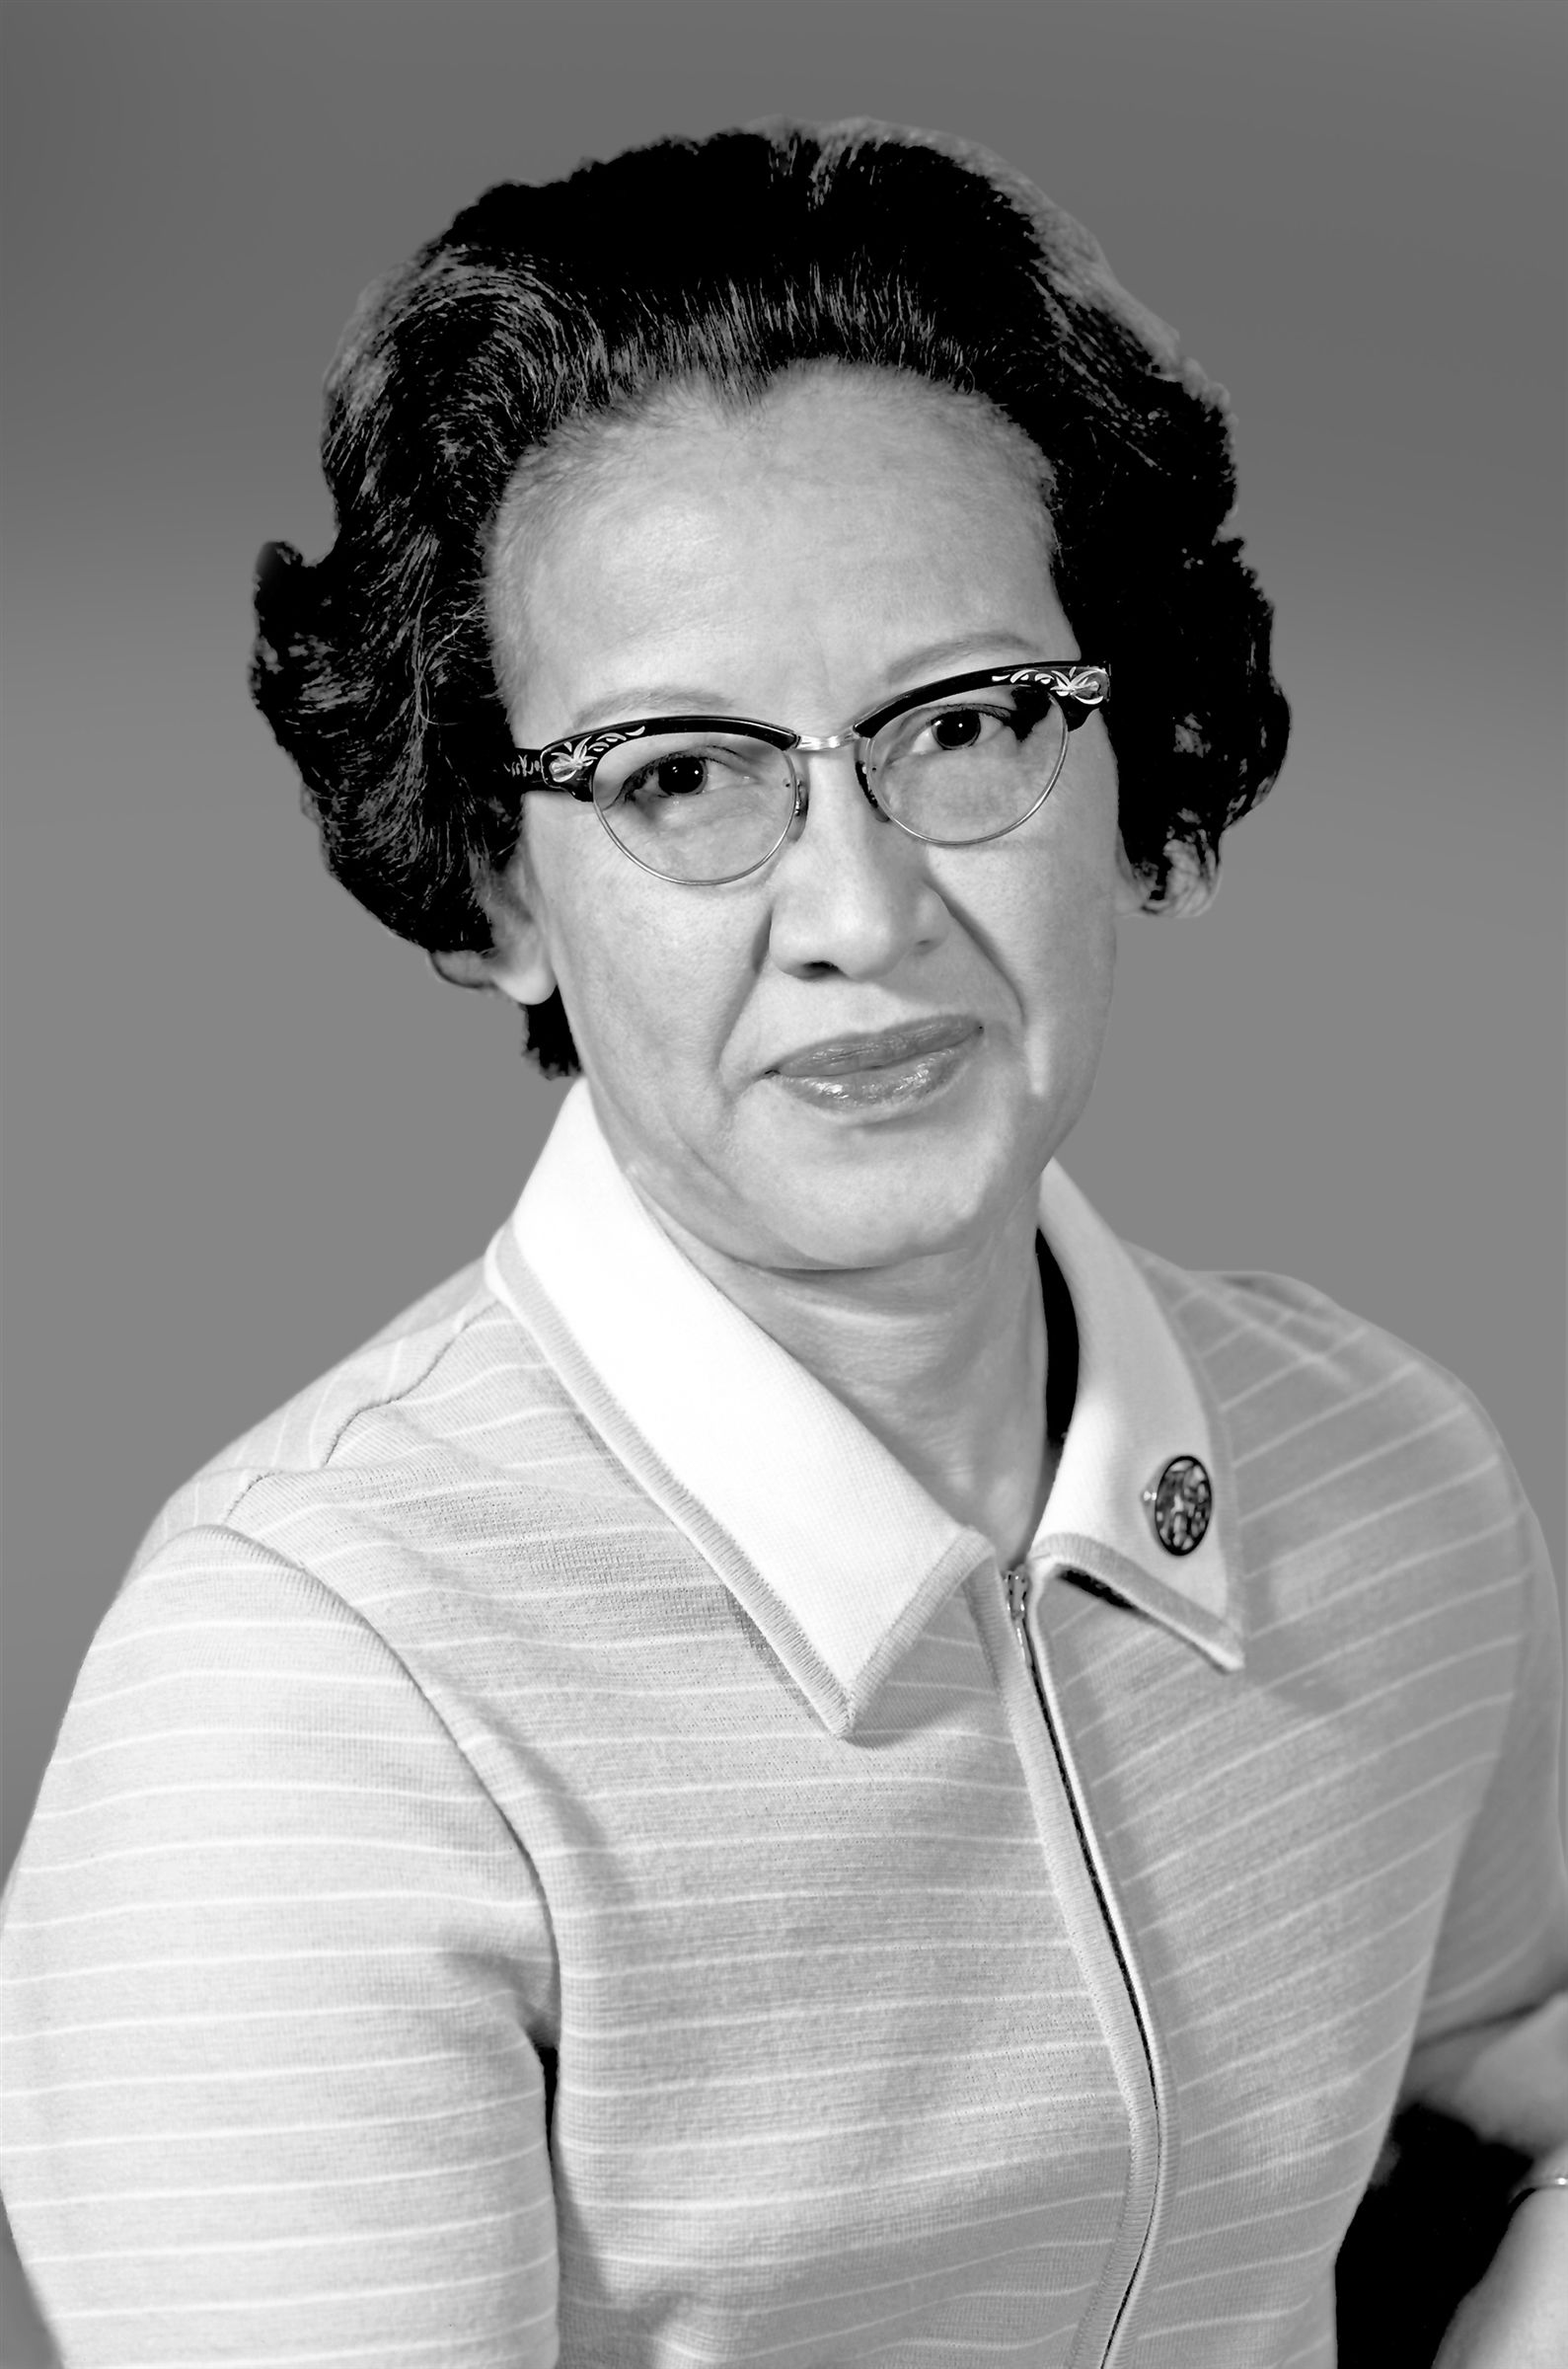 This is Katherine Johnson. She started high school at age 10 and went on to take every math class at West Virginia University. She graduated summa cum laude with degrees in mathematics and French at age 18. She applied to work at NASA and was first rejected, but she later started working there as a computer. While at NASA, she was one of few black women, yet she helped calculate orbital mechanics that helped with space flights. She is most known for helping with the mission of astronaut John Glenn, the first man to orbit the earth in 1962.   Katherine Johnson demonstrates that black women can work just as well (if not better than) their white coworkers. She broke barriers for both African Americans and women working in STEM. You may recognize her from the 2016 movie Hidden Figures, based on the book by Margot Lee Shetterly of the same name. There is a statue of her at her Alma Mater, West Virginia University, and there is even a Barbie doll of her. In 2015, President Barack Obama awarded her the Medal of Freedom, America's highest civilian honor. Today she is 100 years old and lives in Hampton, Virginia.